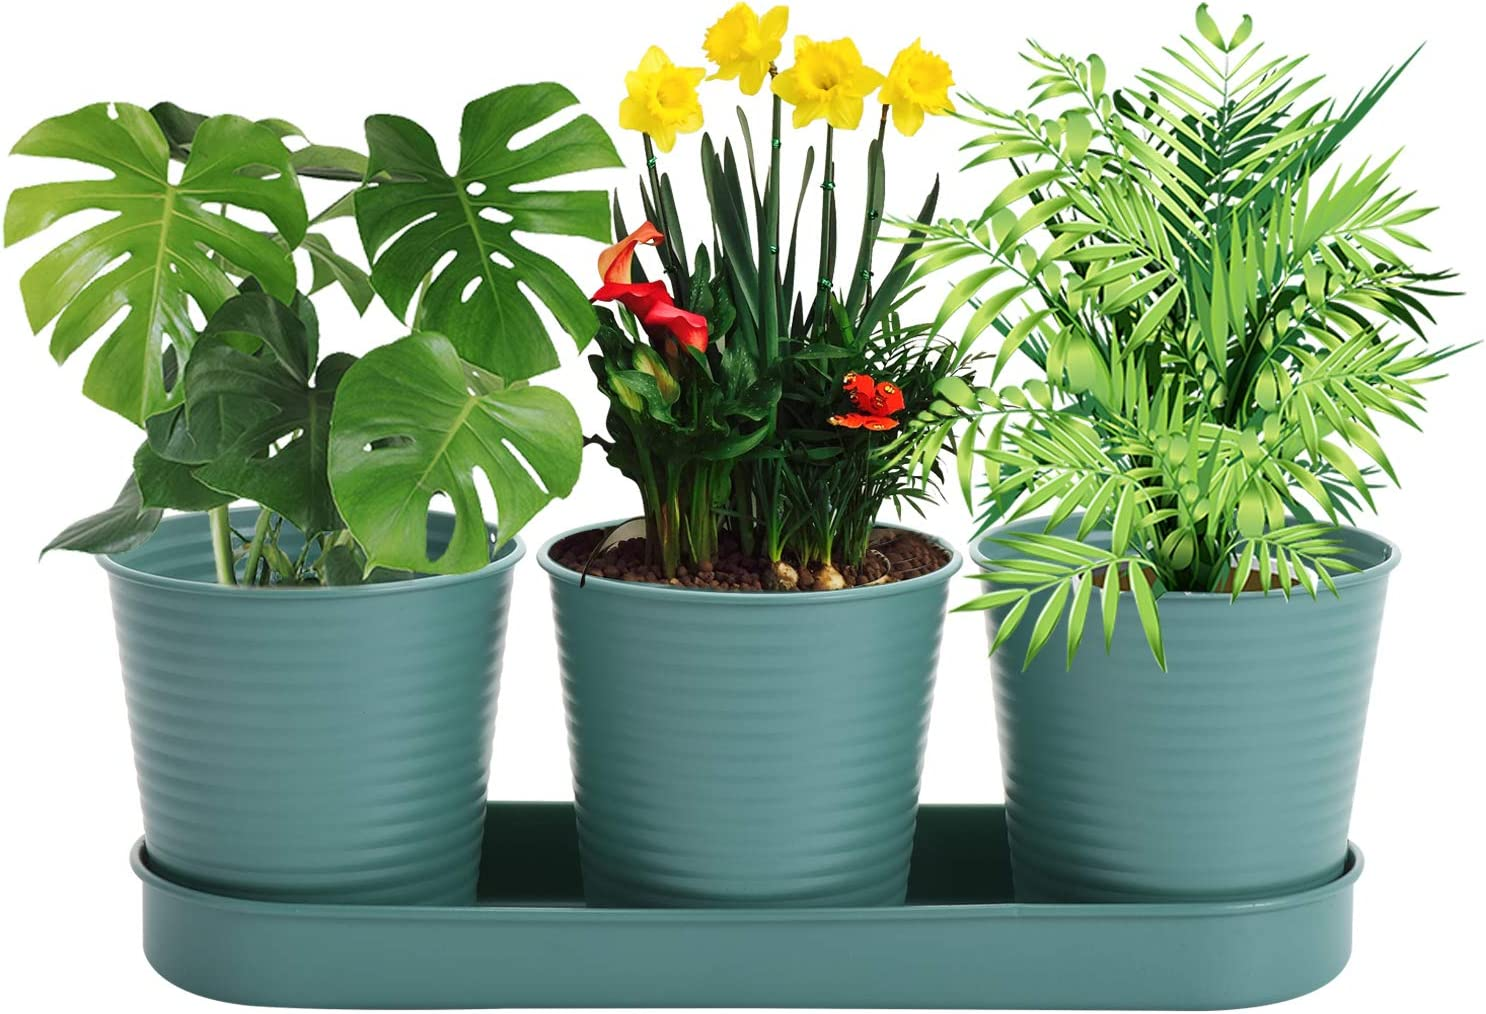 Herb Plant Pots Set, Succulent Pots with Tray and Drain Holes Indoor Garden Metal Planters for Kitchen Windowsill Garden Home Outdoor Decor